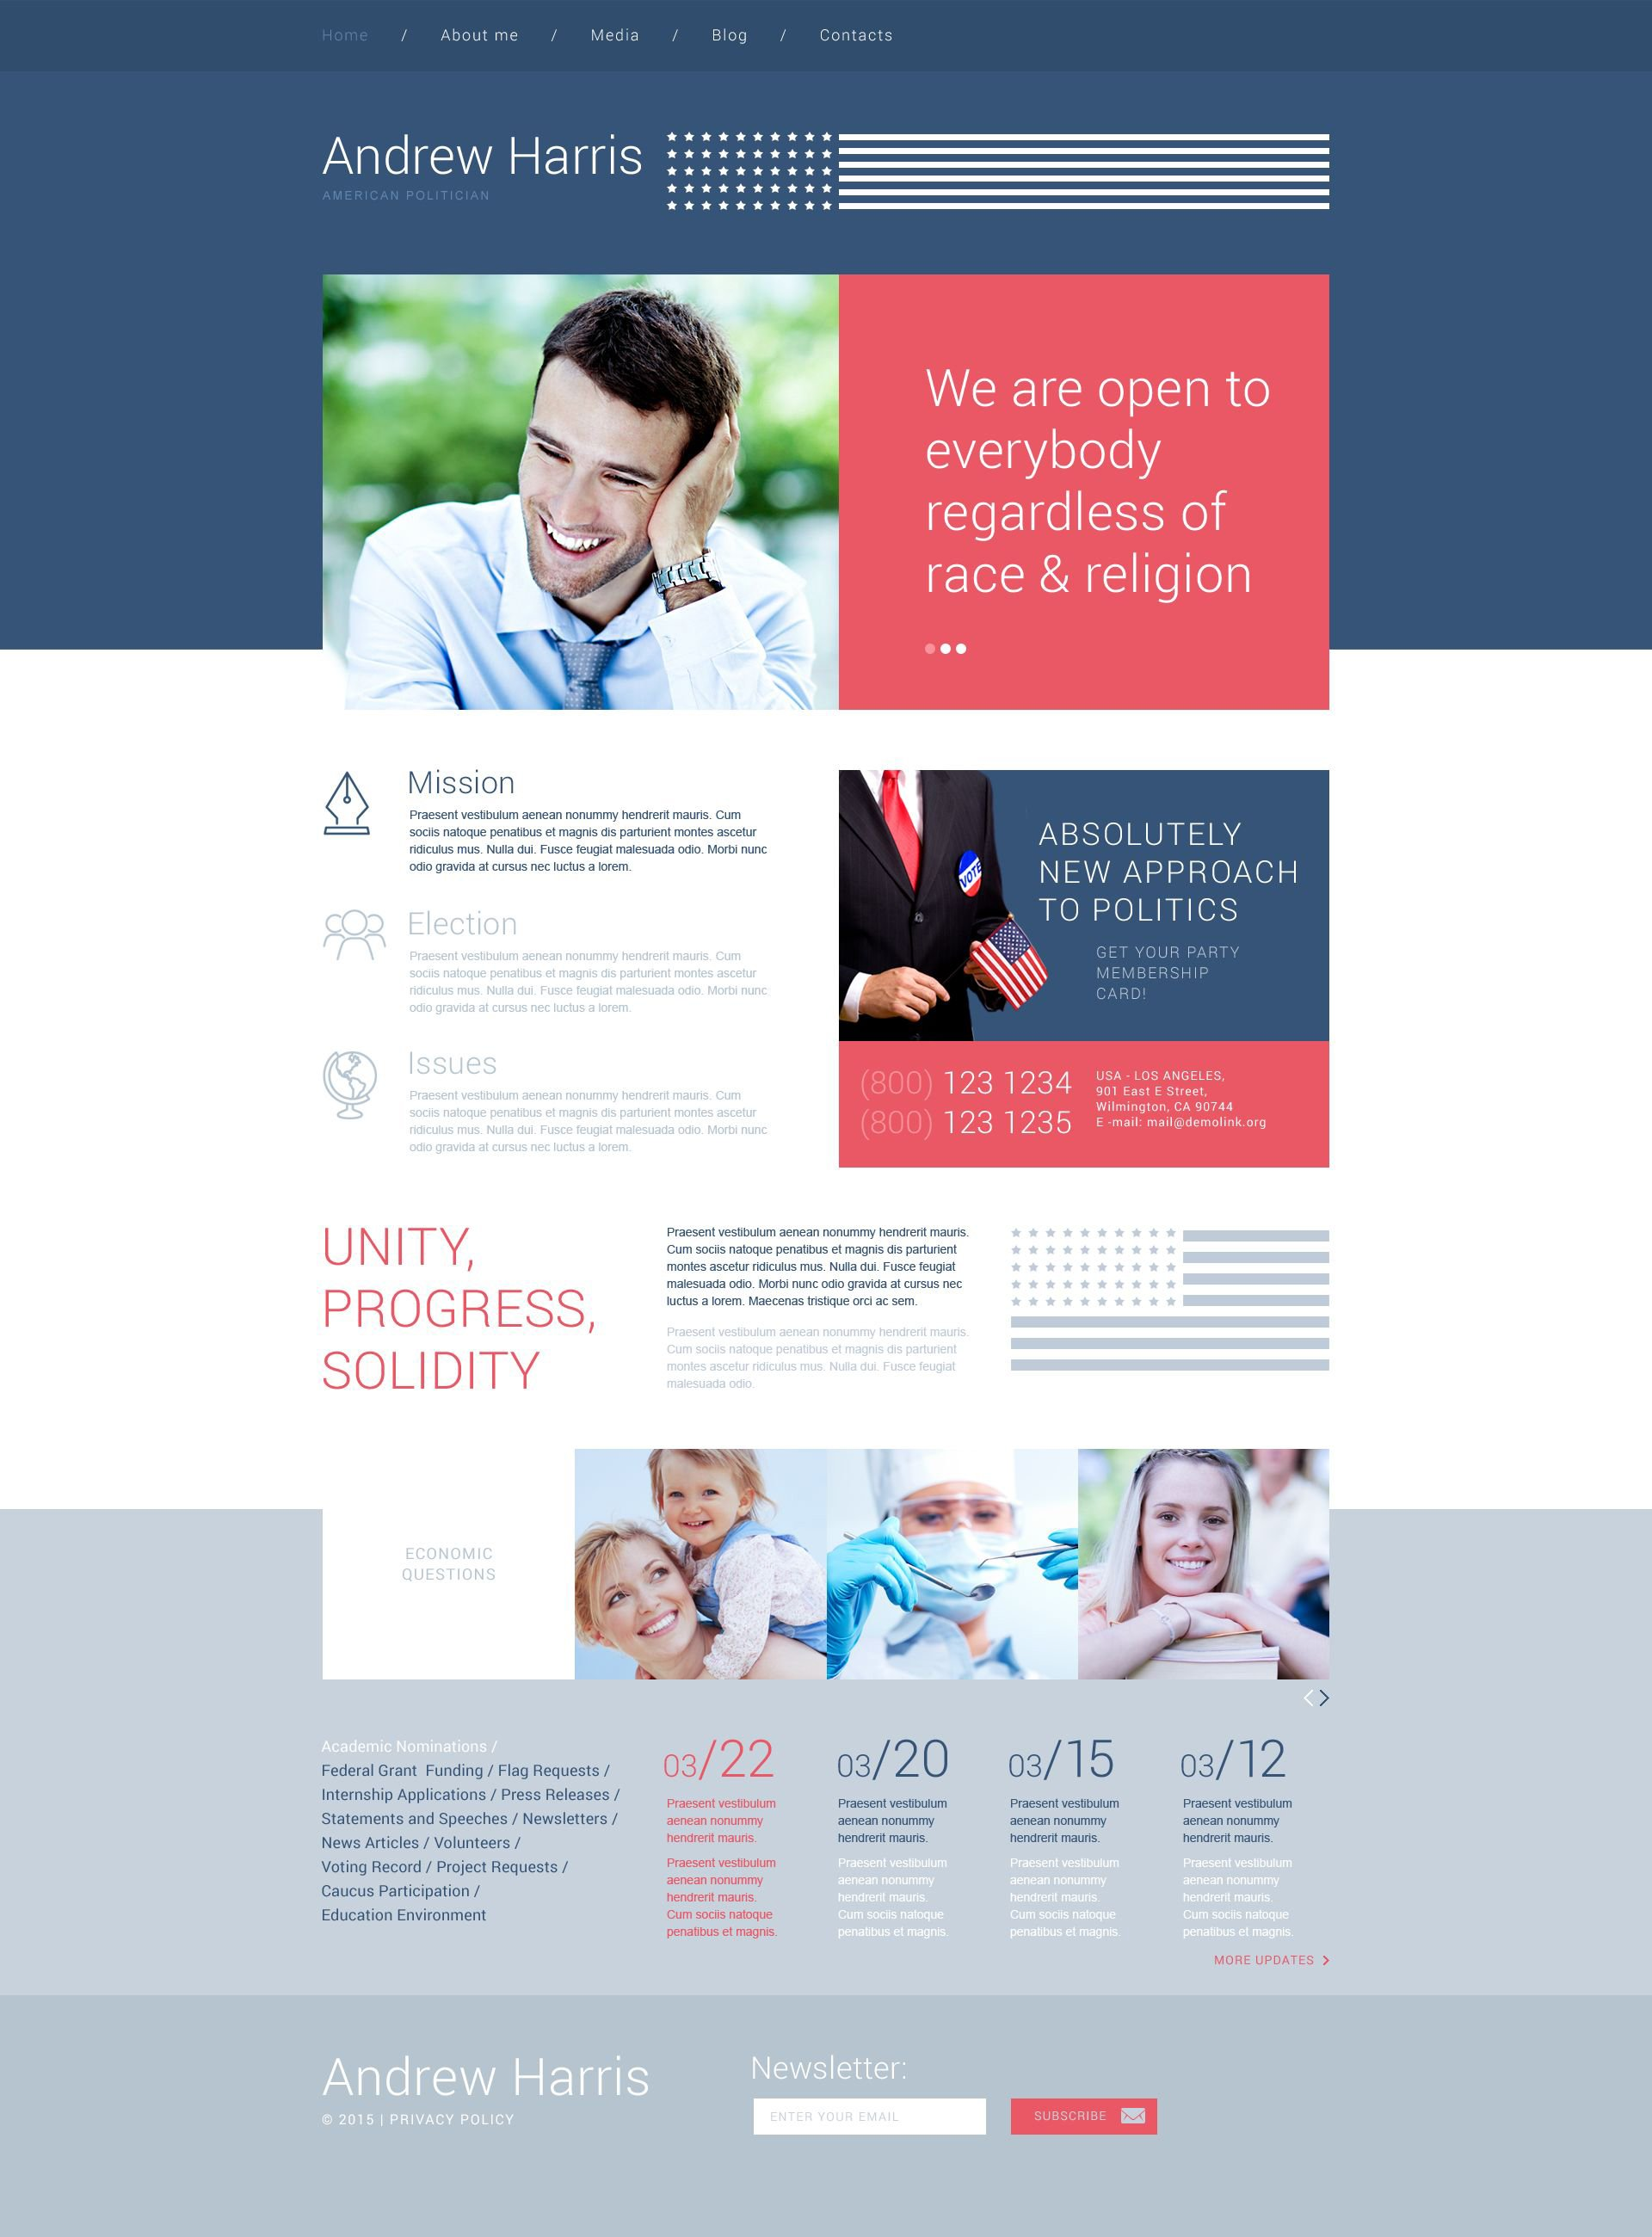 The Andrew Harris Politician WordPress Design 54033, one of the best WordPress themes of its kind (wedding, most popular), also known as Andrew Harris politician WordPress template, political organization WordPress template, leader WordPress template, chairman WordPress template, campaign WordPress template, constitution WordPress template, member WordPress template, principles WordPress template, information WordPress template, donation WordPress template, platform WordPress template, flag WordPress template, candidates WordPress template, debates WordPress template, structure WordPress template, election WordPress template, program WordPress template, priority and related with Andrew Harris politician, political organization, leader, chairman, campaign, constitution, member, principles, information, donation, platform, flag, candidates, debates, structure, election, program, priority, etc.